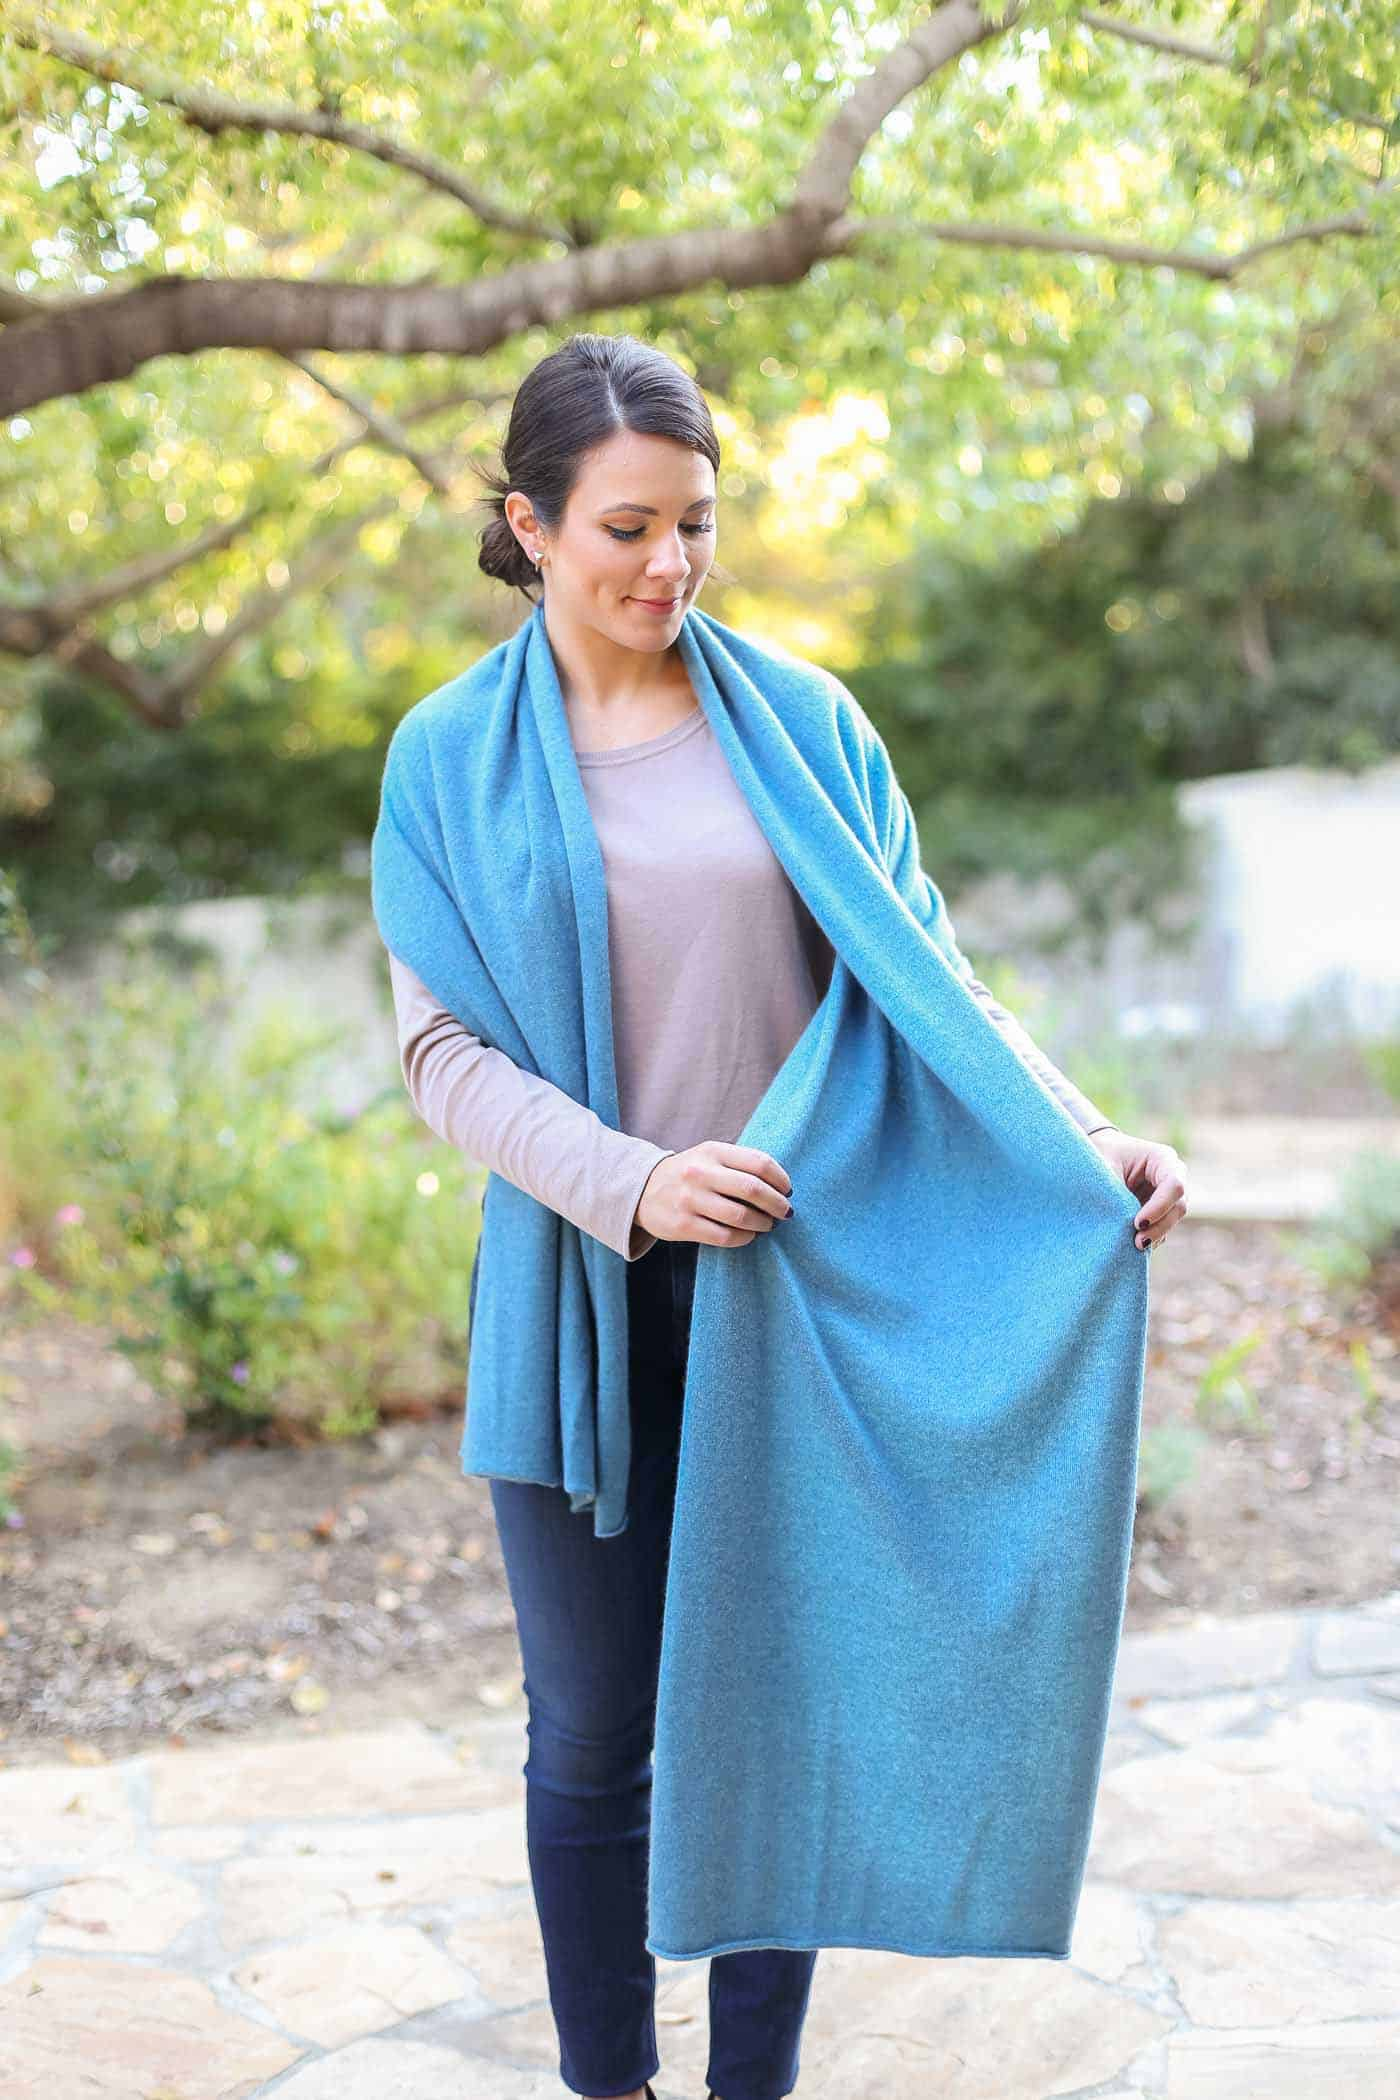 how to wear a pashmina wrap, 4 ways to tie a scarf, how to wear a blanket scarf, fall outfits - My Style Vita @mystylevita